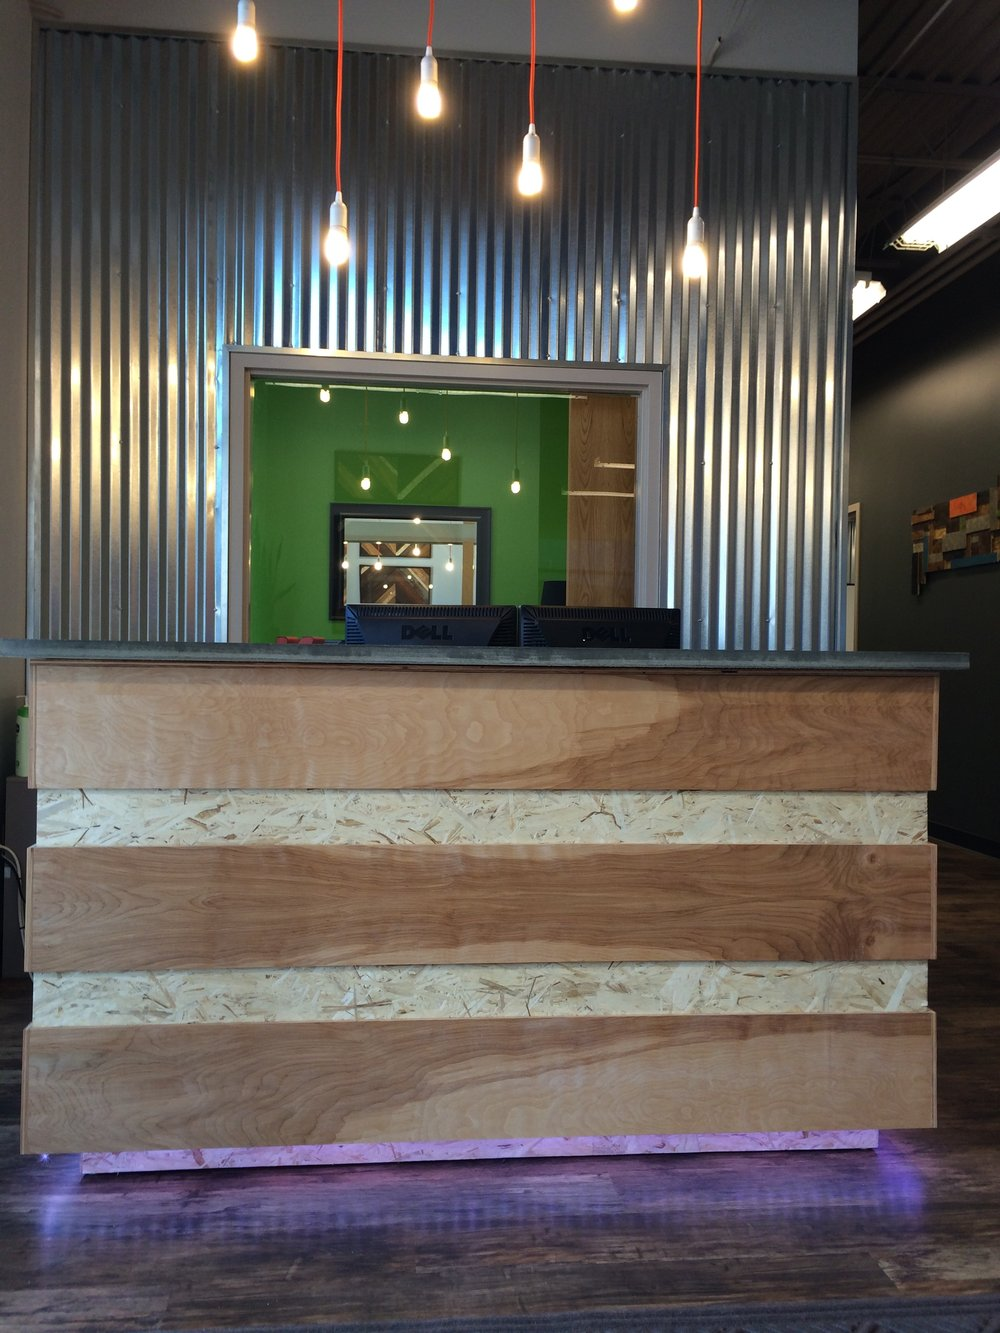 Custom birch and play wood reception desk...makes for the perfect industrial modern mix